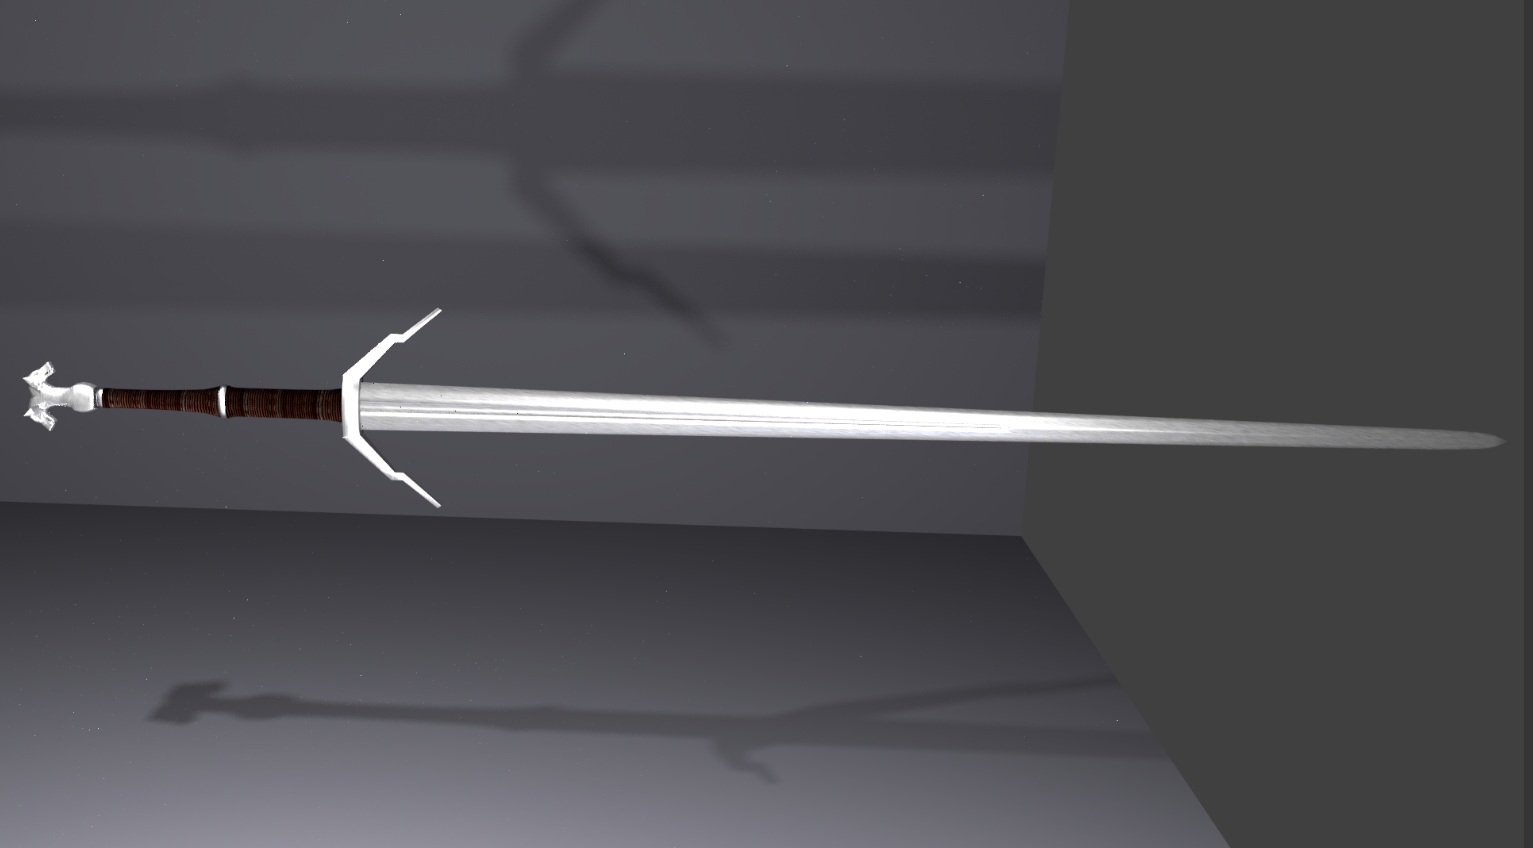 Geralts silver sword preview image 3